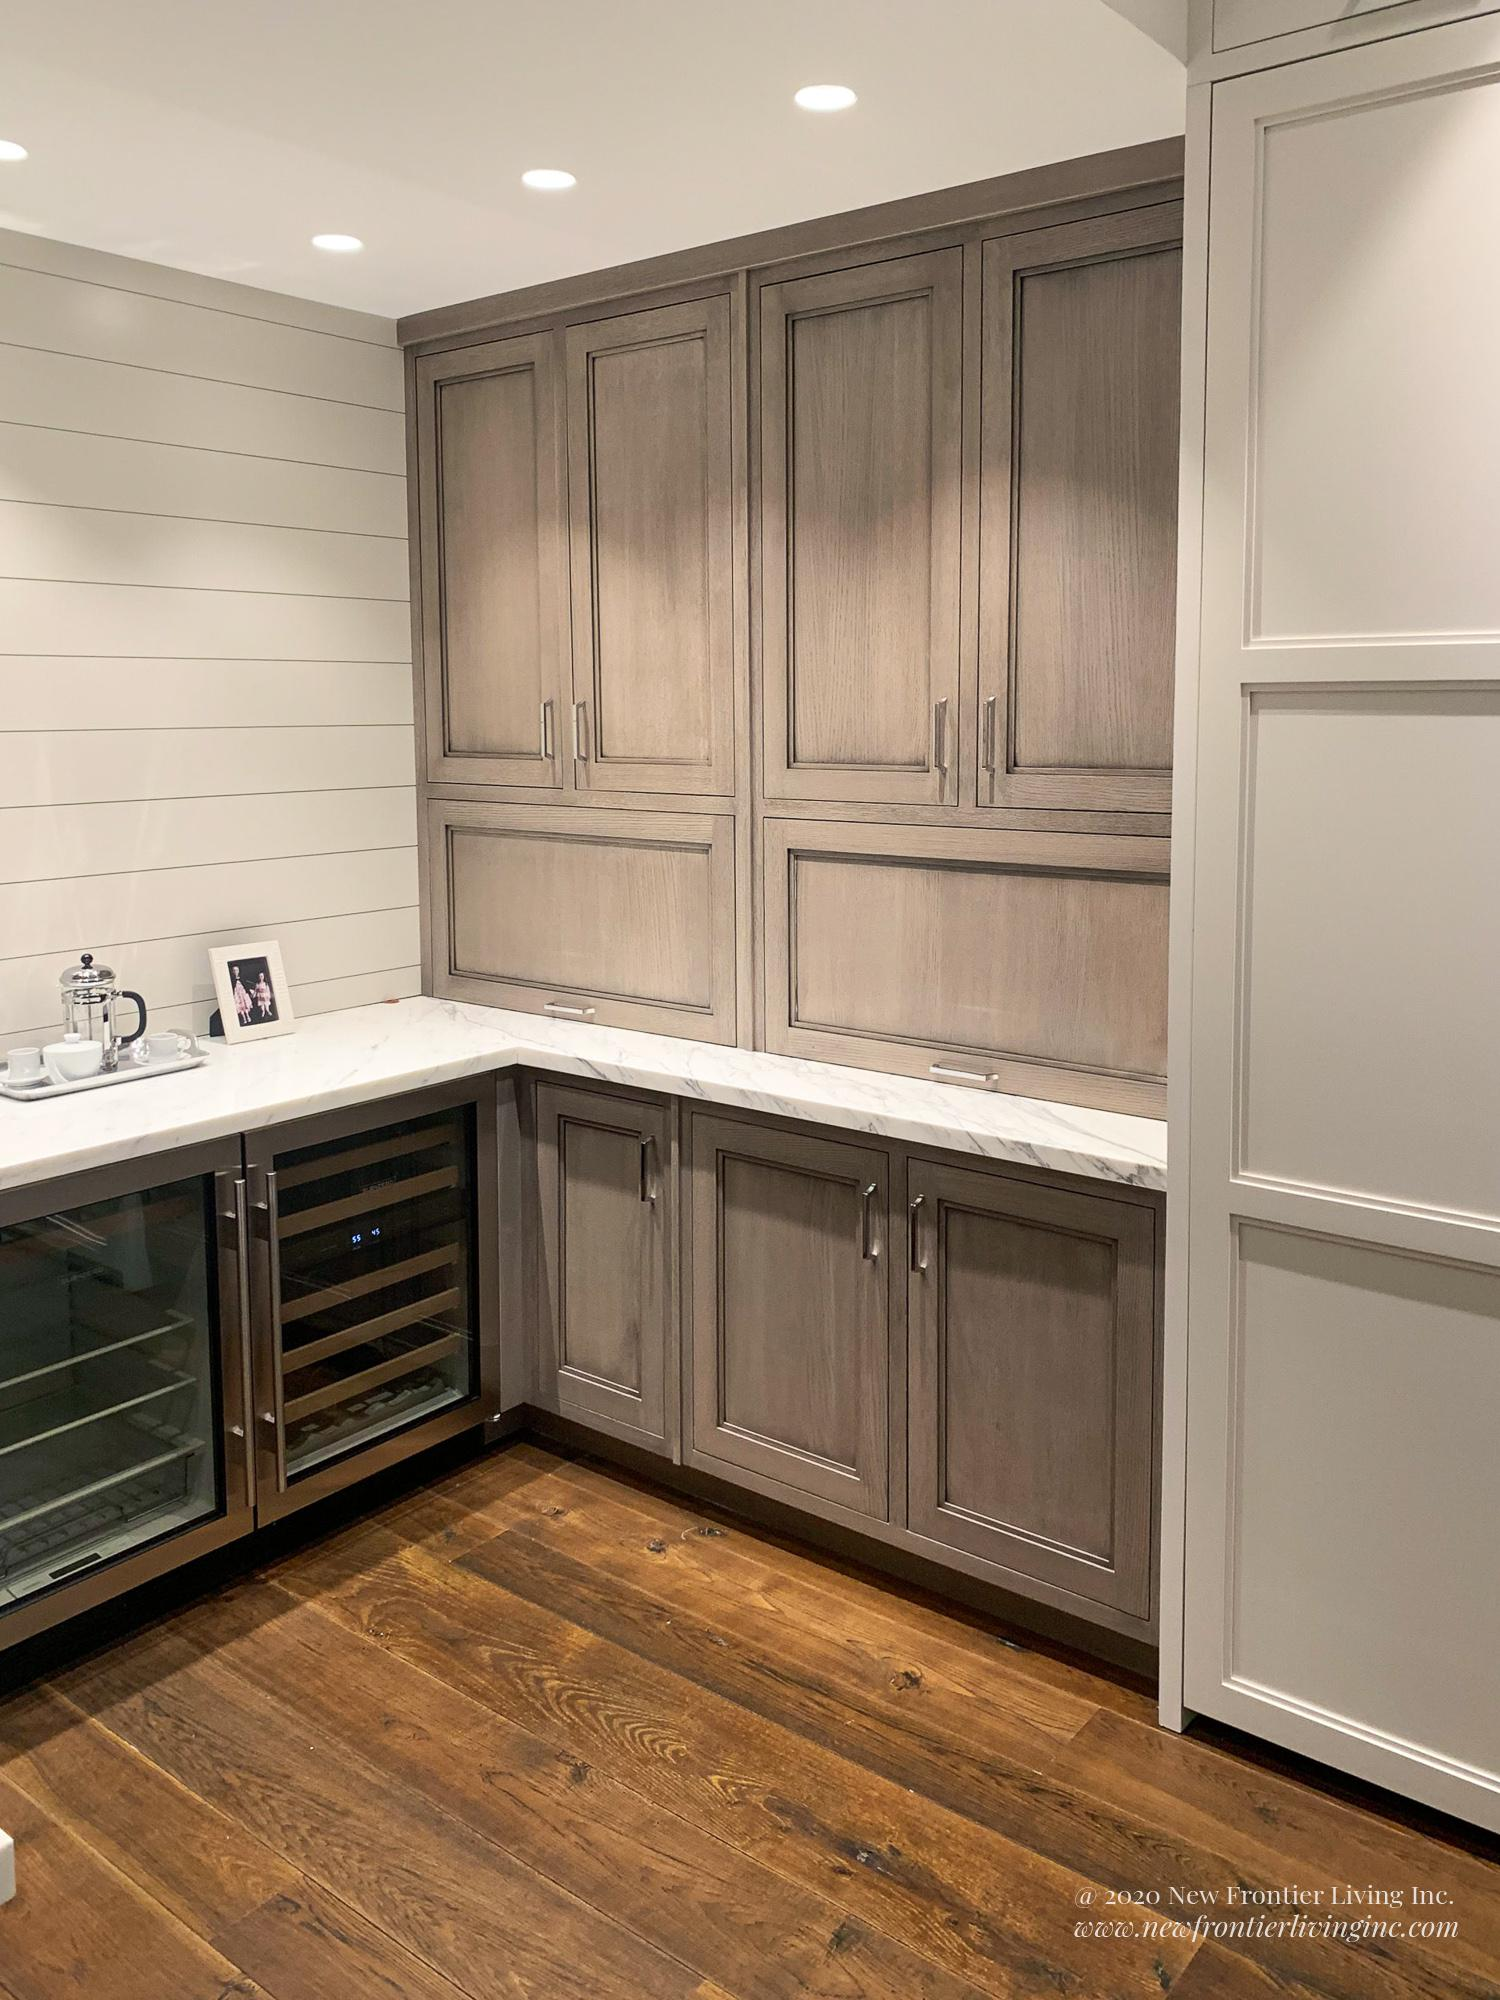 Matte peach kitchen cabinetry and white countertop, wine coolers on the bottom